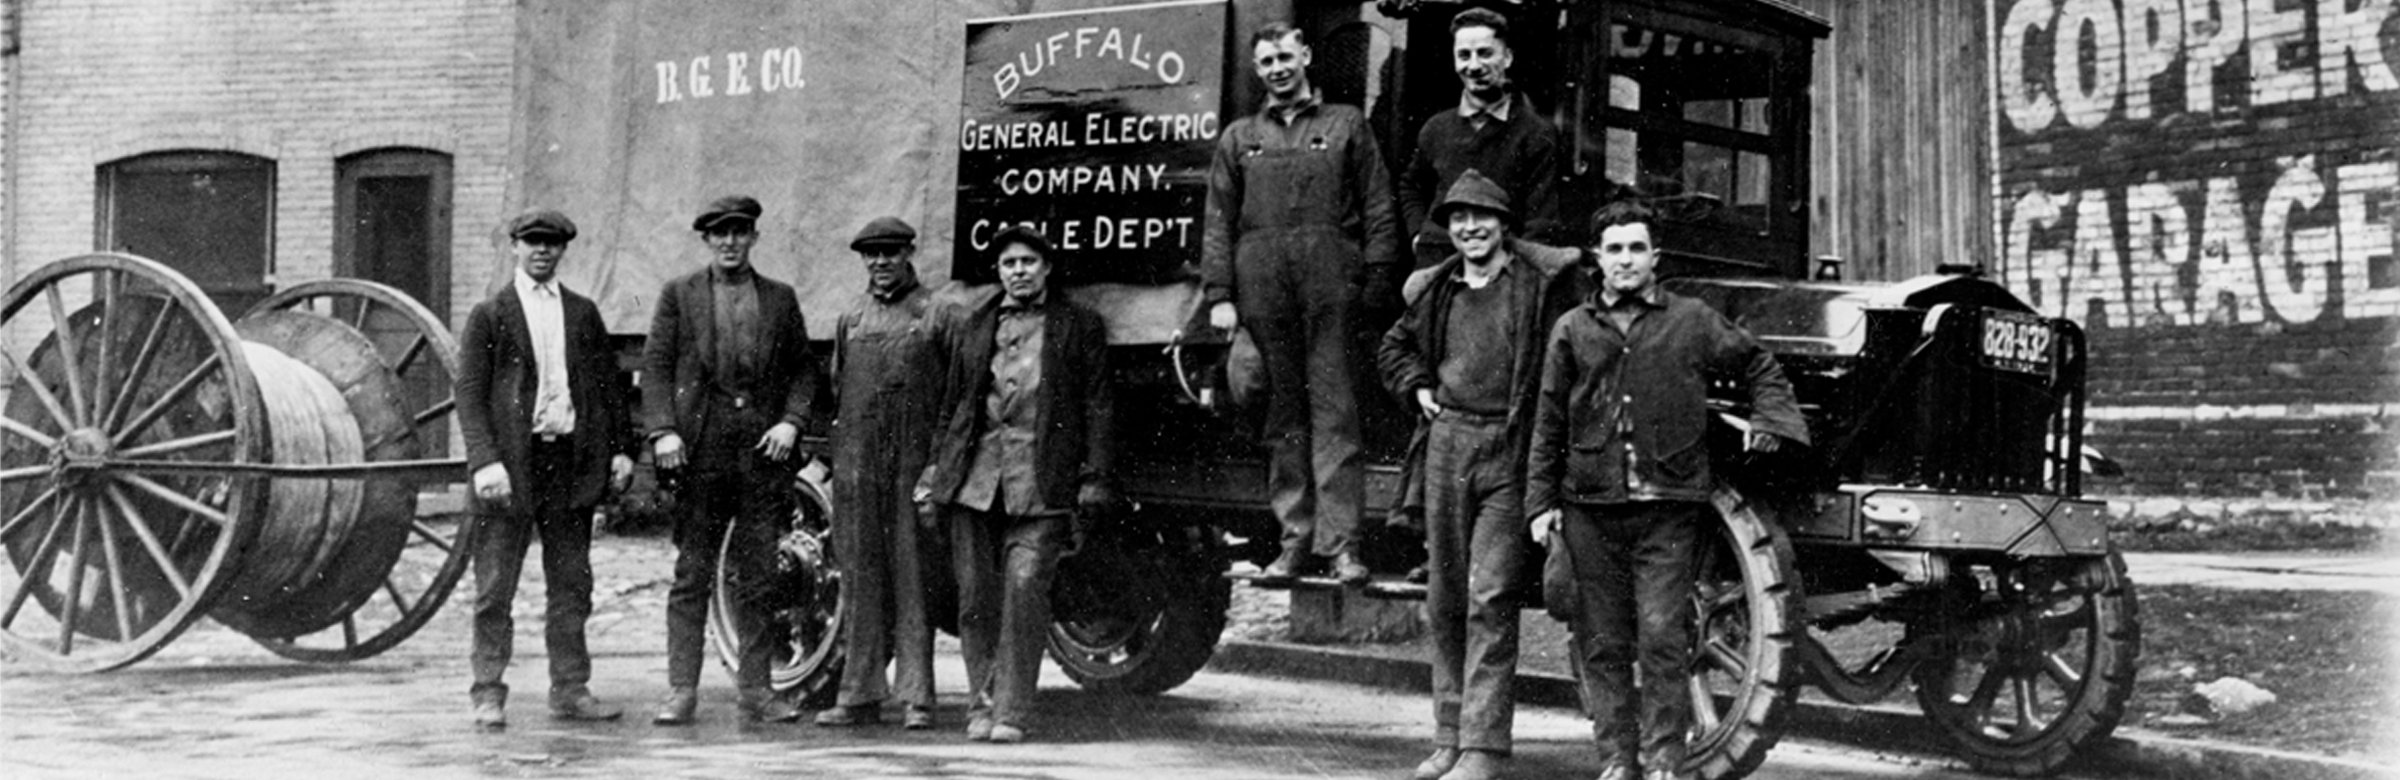 Electricity company vehicle with group of men from 1922 - Our history